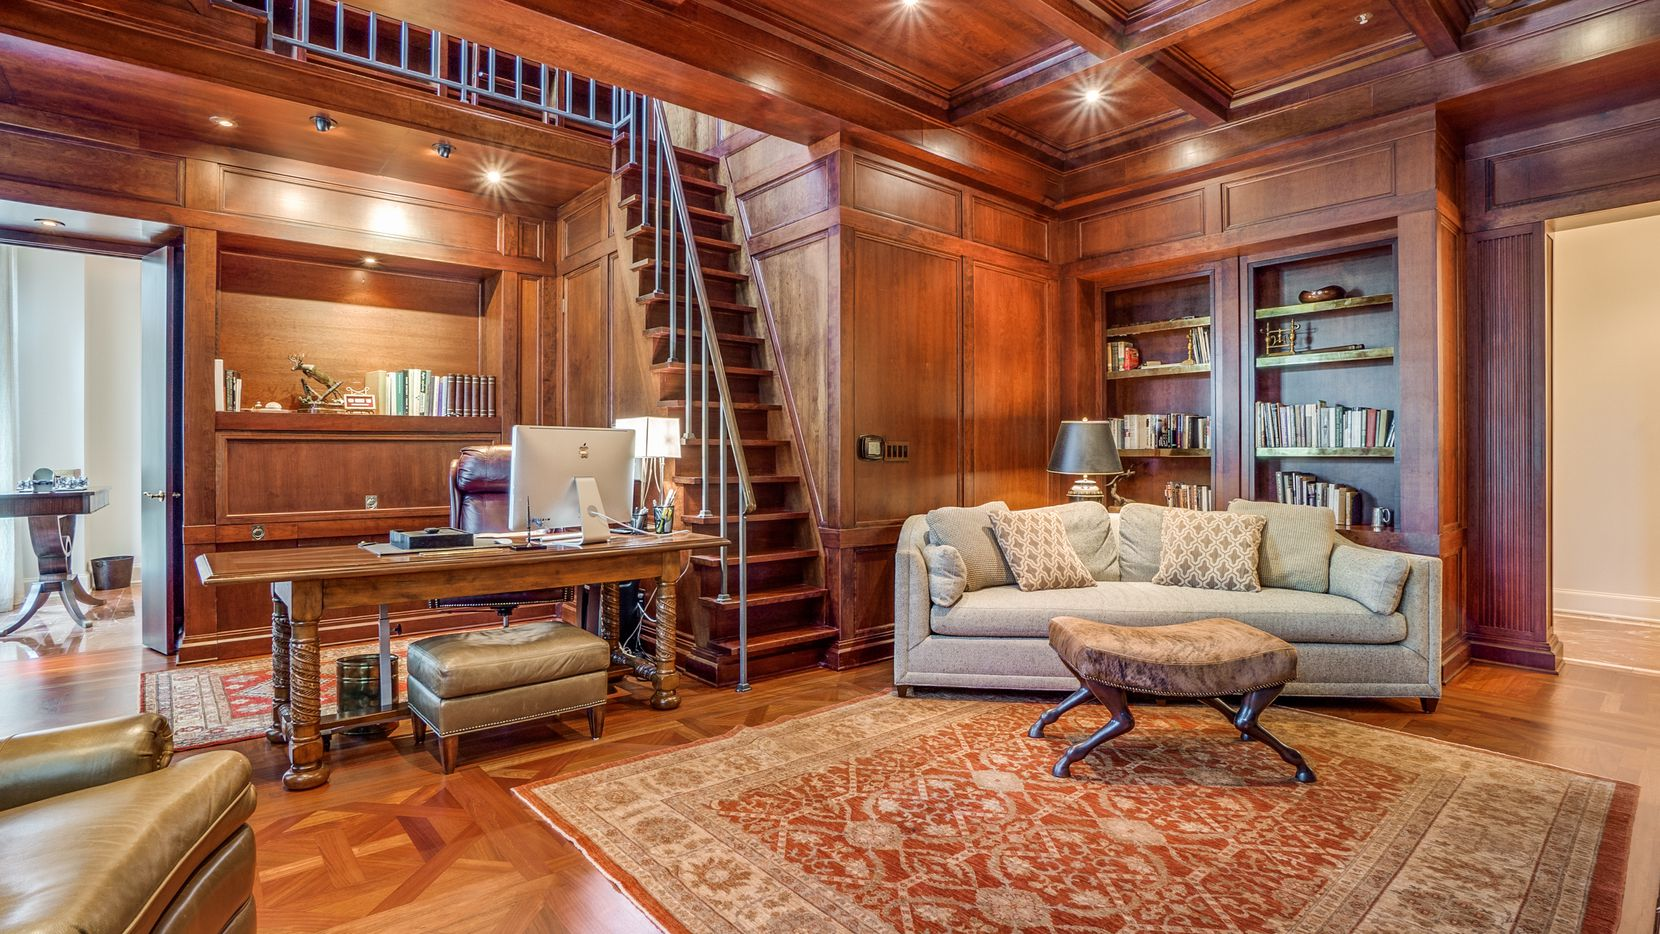 Take a look at the interior of 3401 Lee Parkway, Unit 3A at The Mayfair in Dallas, TX.